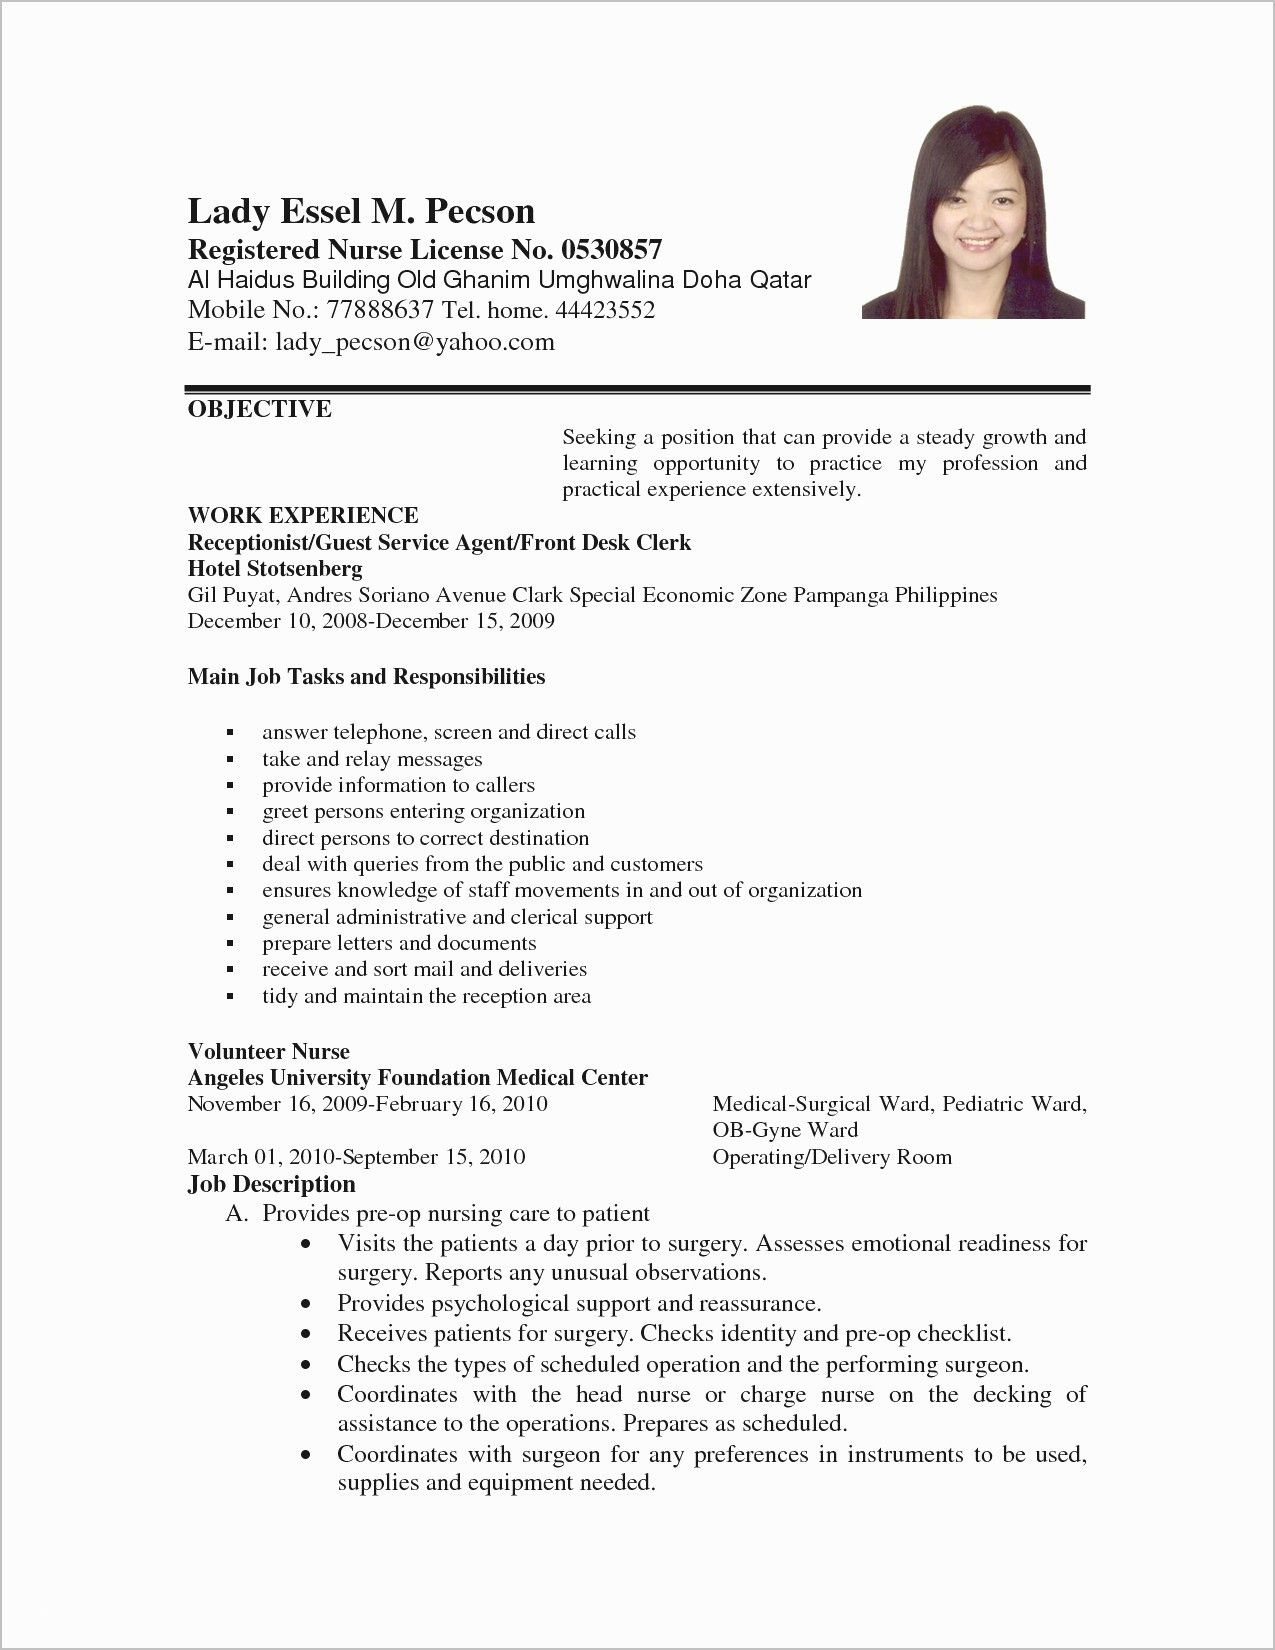 76 Elegant Photos Of Resume Examples For Call Center Jobs Job Resume Examples Cover Letter For Resume Resume Objective Examples